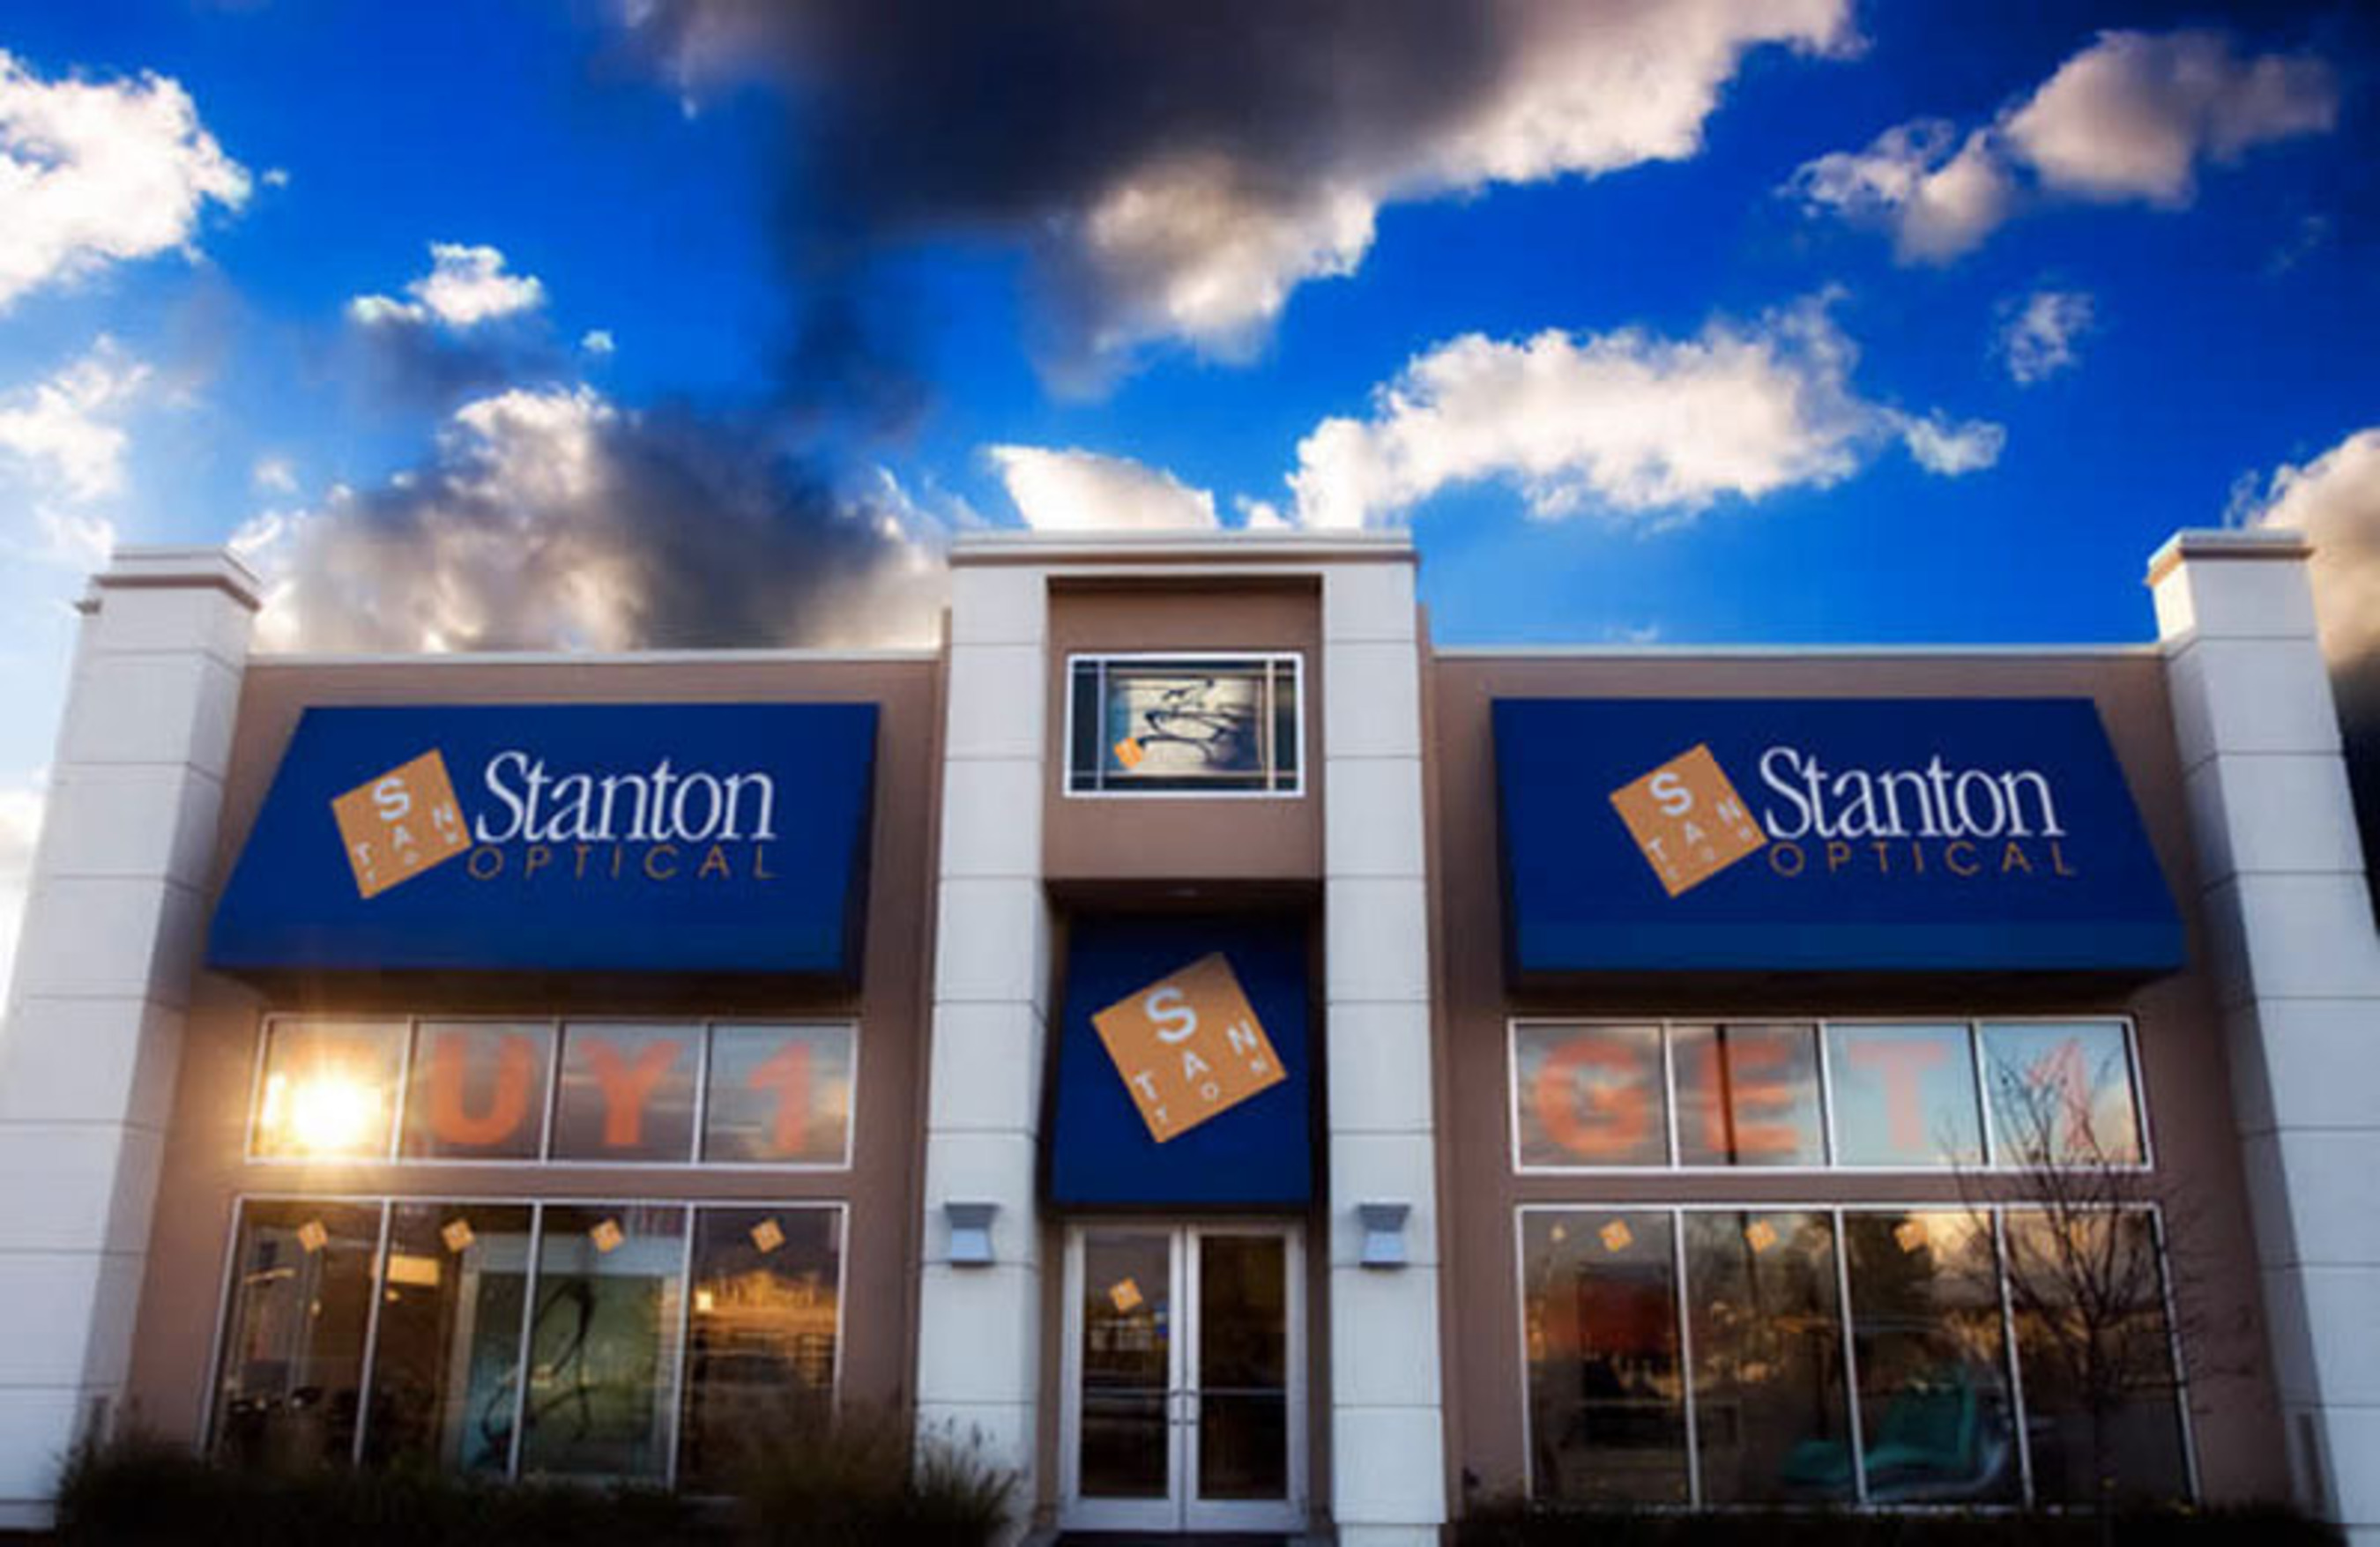 Stanton Optical Eyeglass Store Opening In The New Market Of El Paso Texas